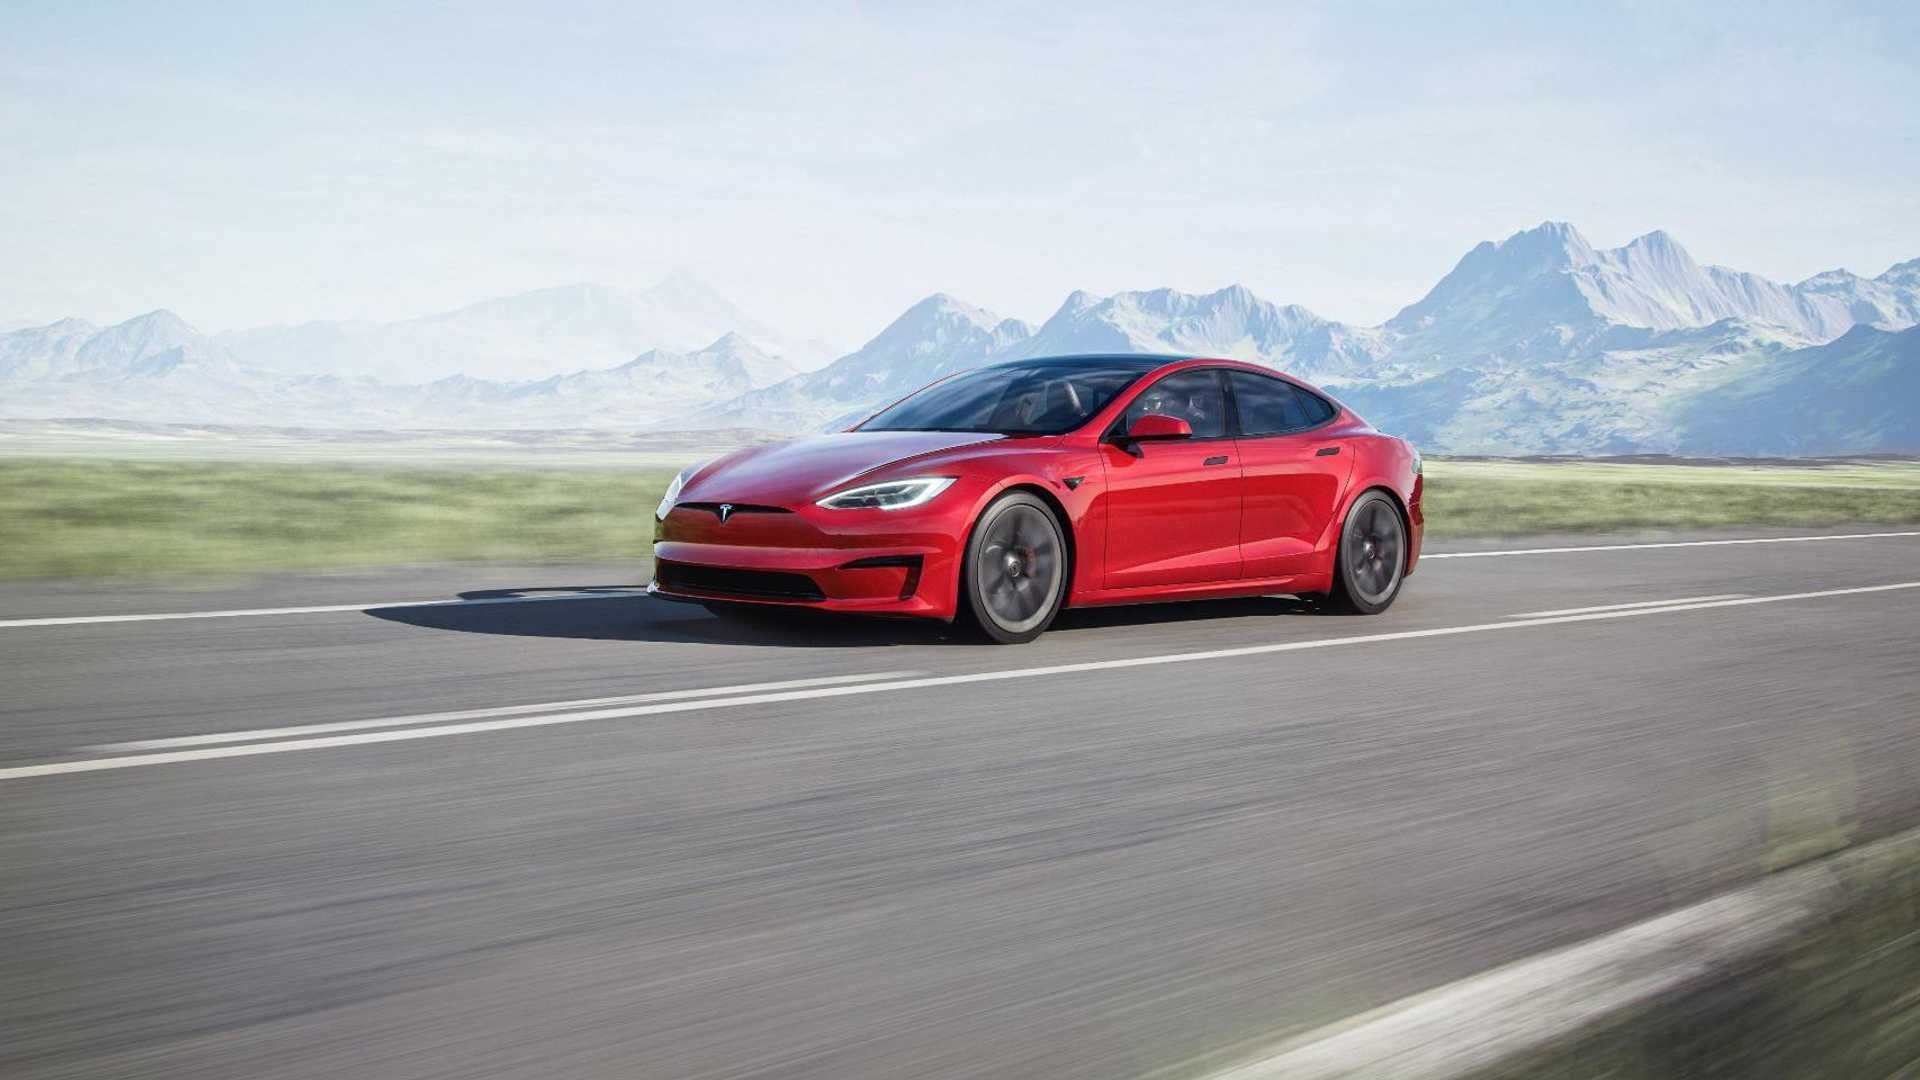 Well Plaid Tesla: This Is How The Model S Will Become The World's Fastest Production Car